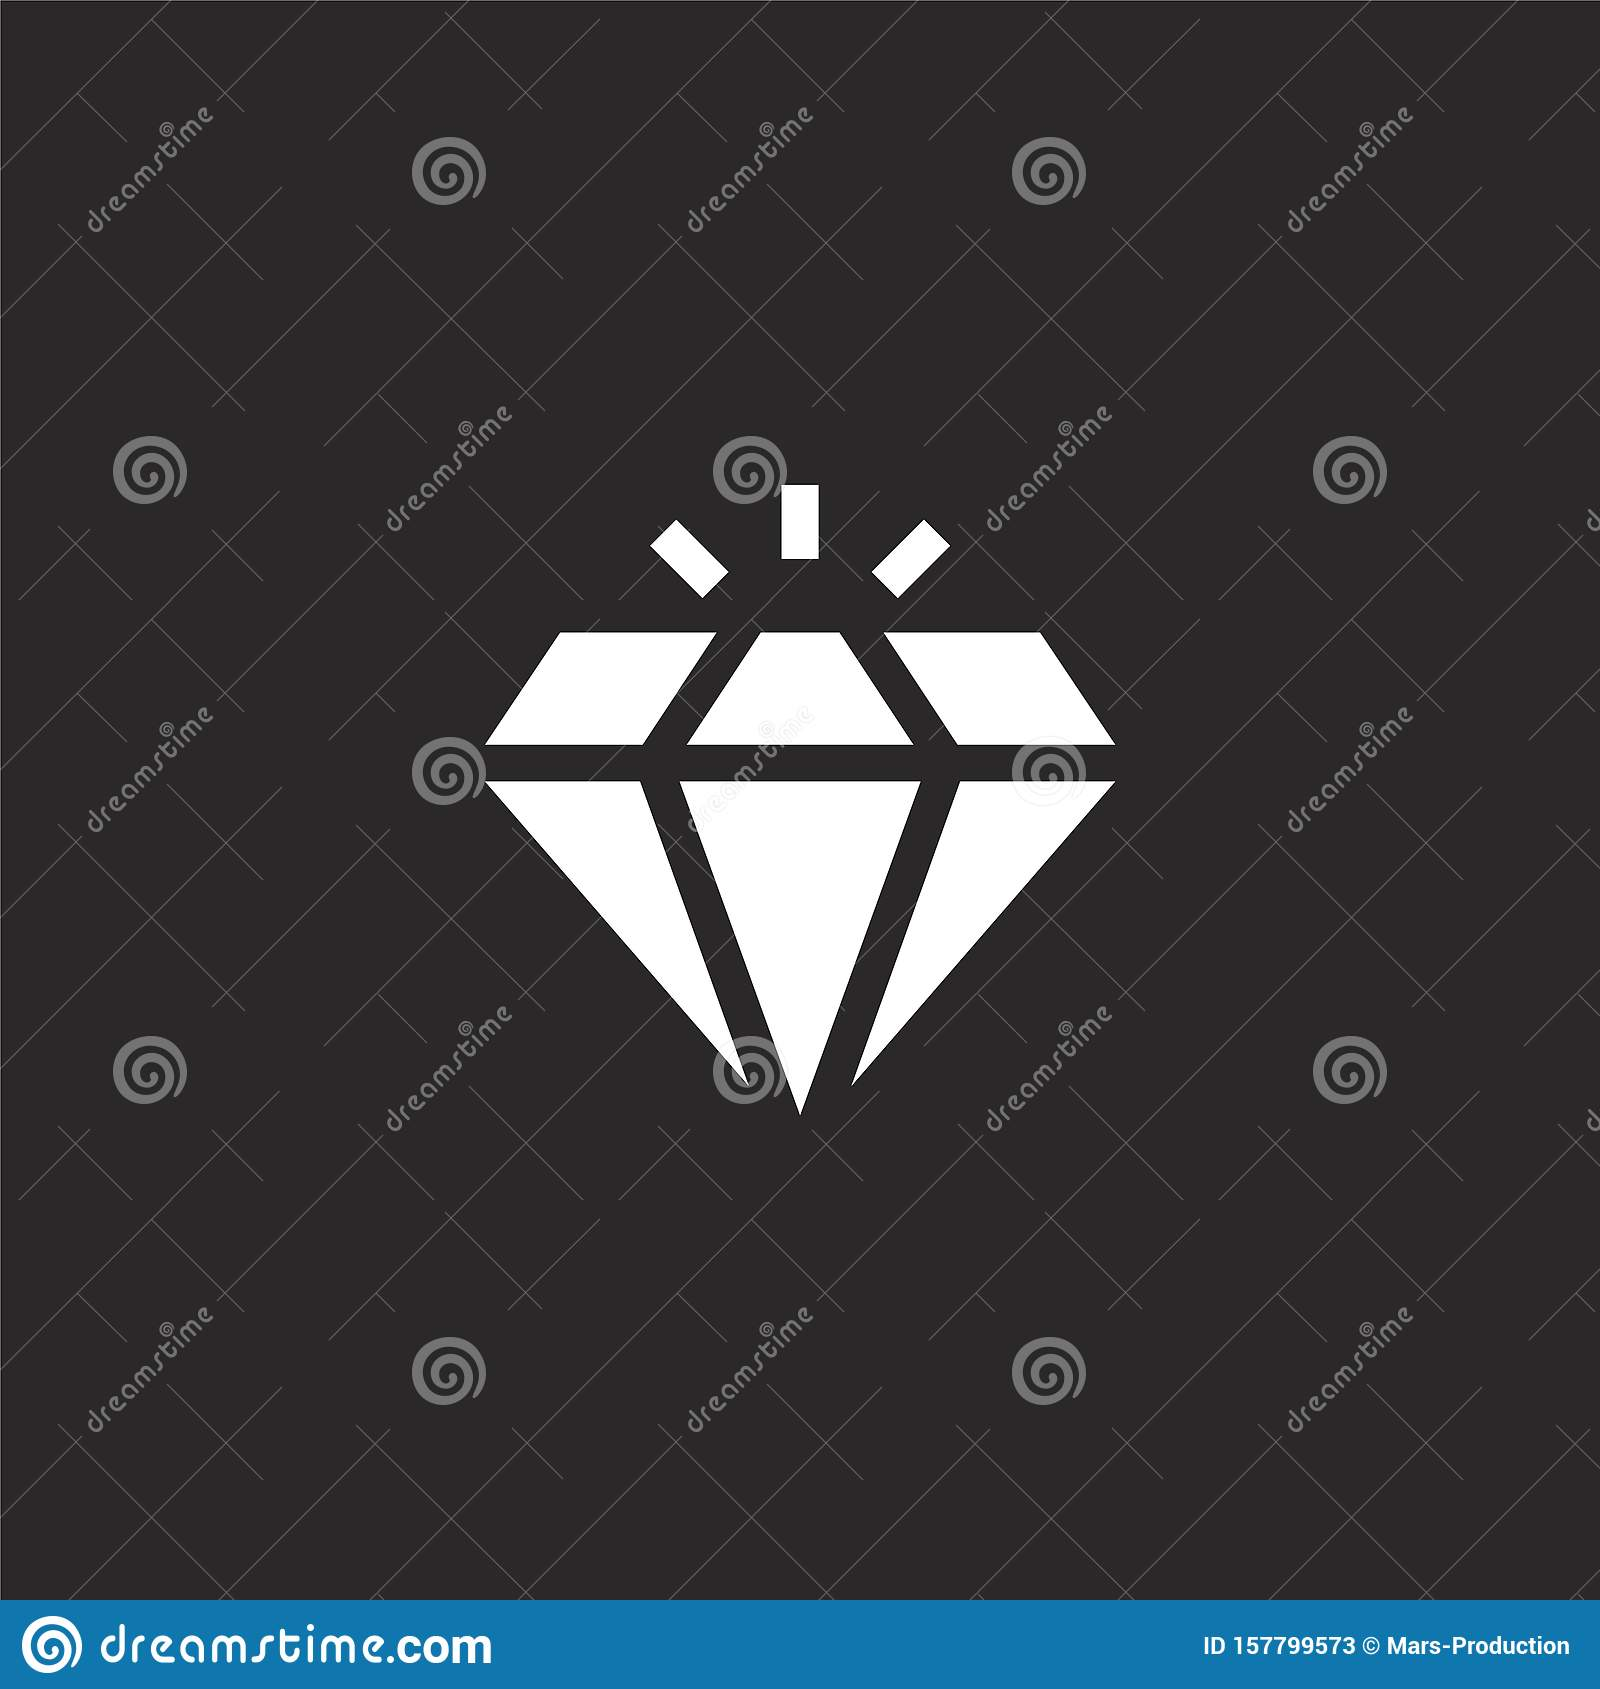 diamond icon. filled diamond icon for website design and